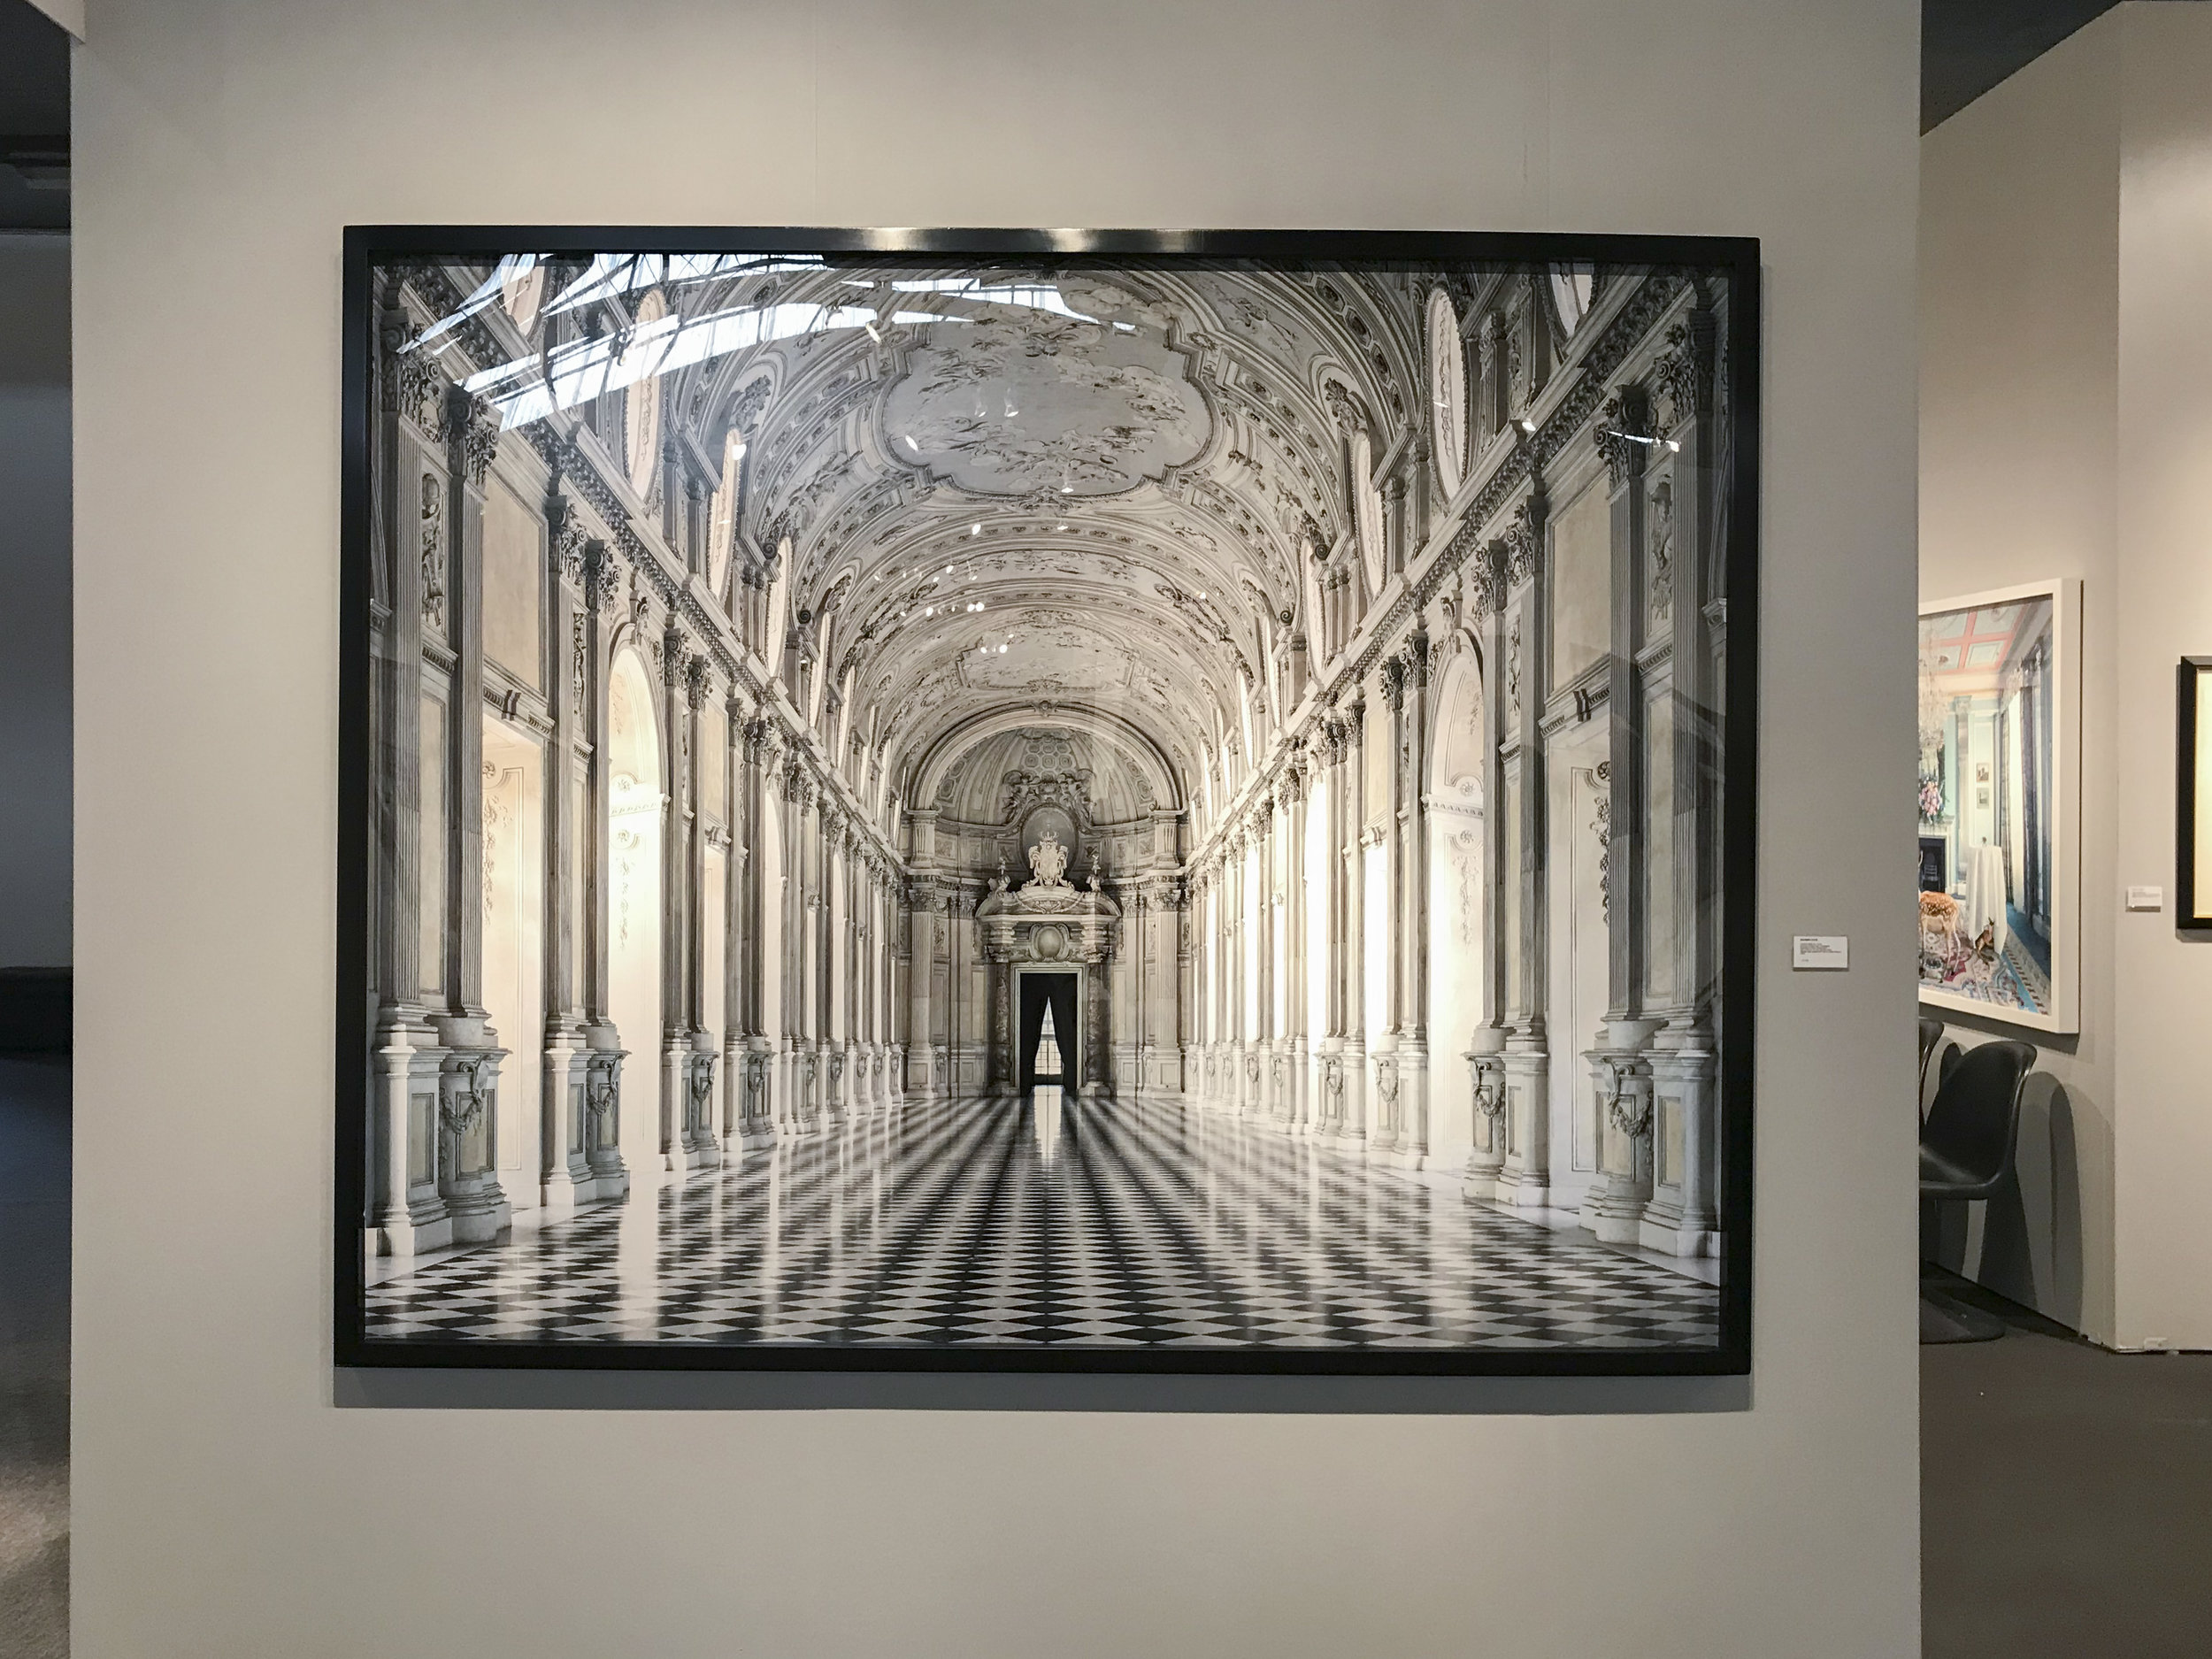 Massimo Listri,  Venaria Reale VII, Torino , 2016, archival lambda color photograph, 70 7/8 x 88 5/8 inches. On view at Holden Luntz Gallery (Booth 100).